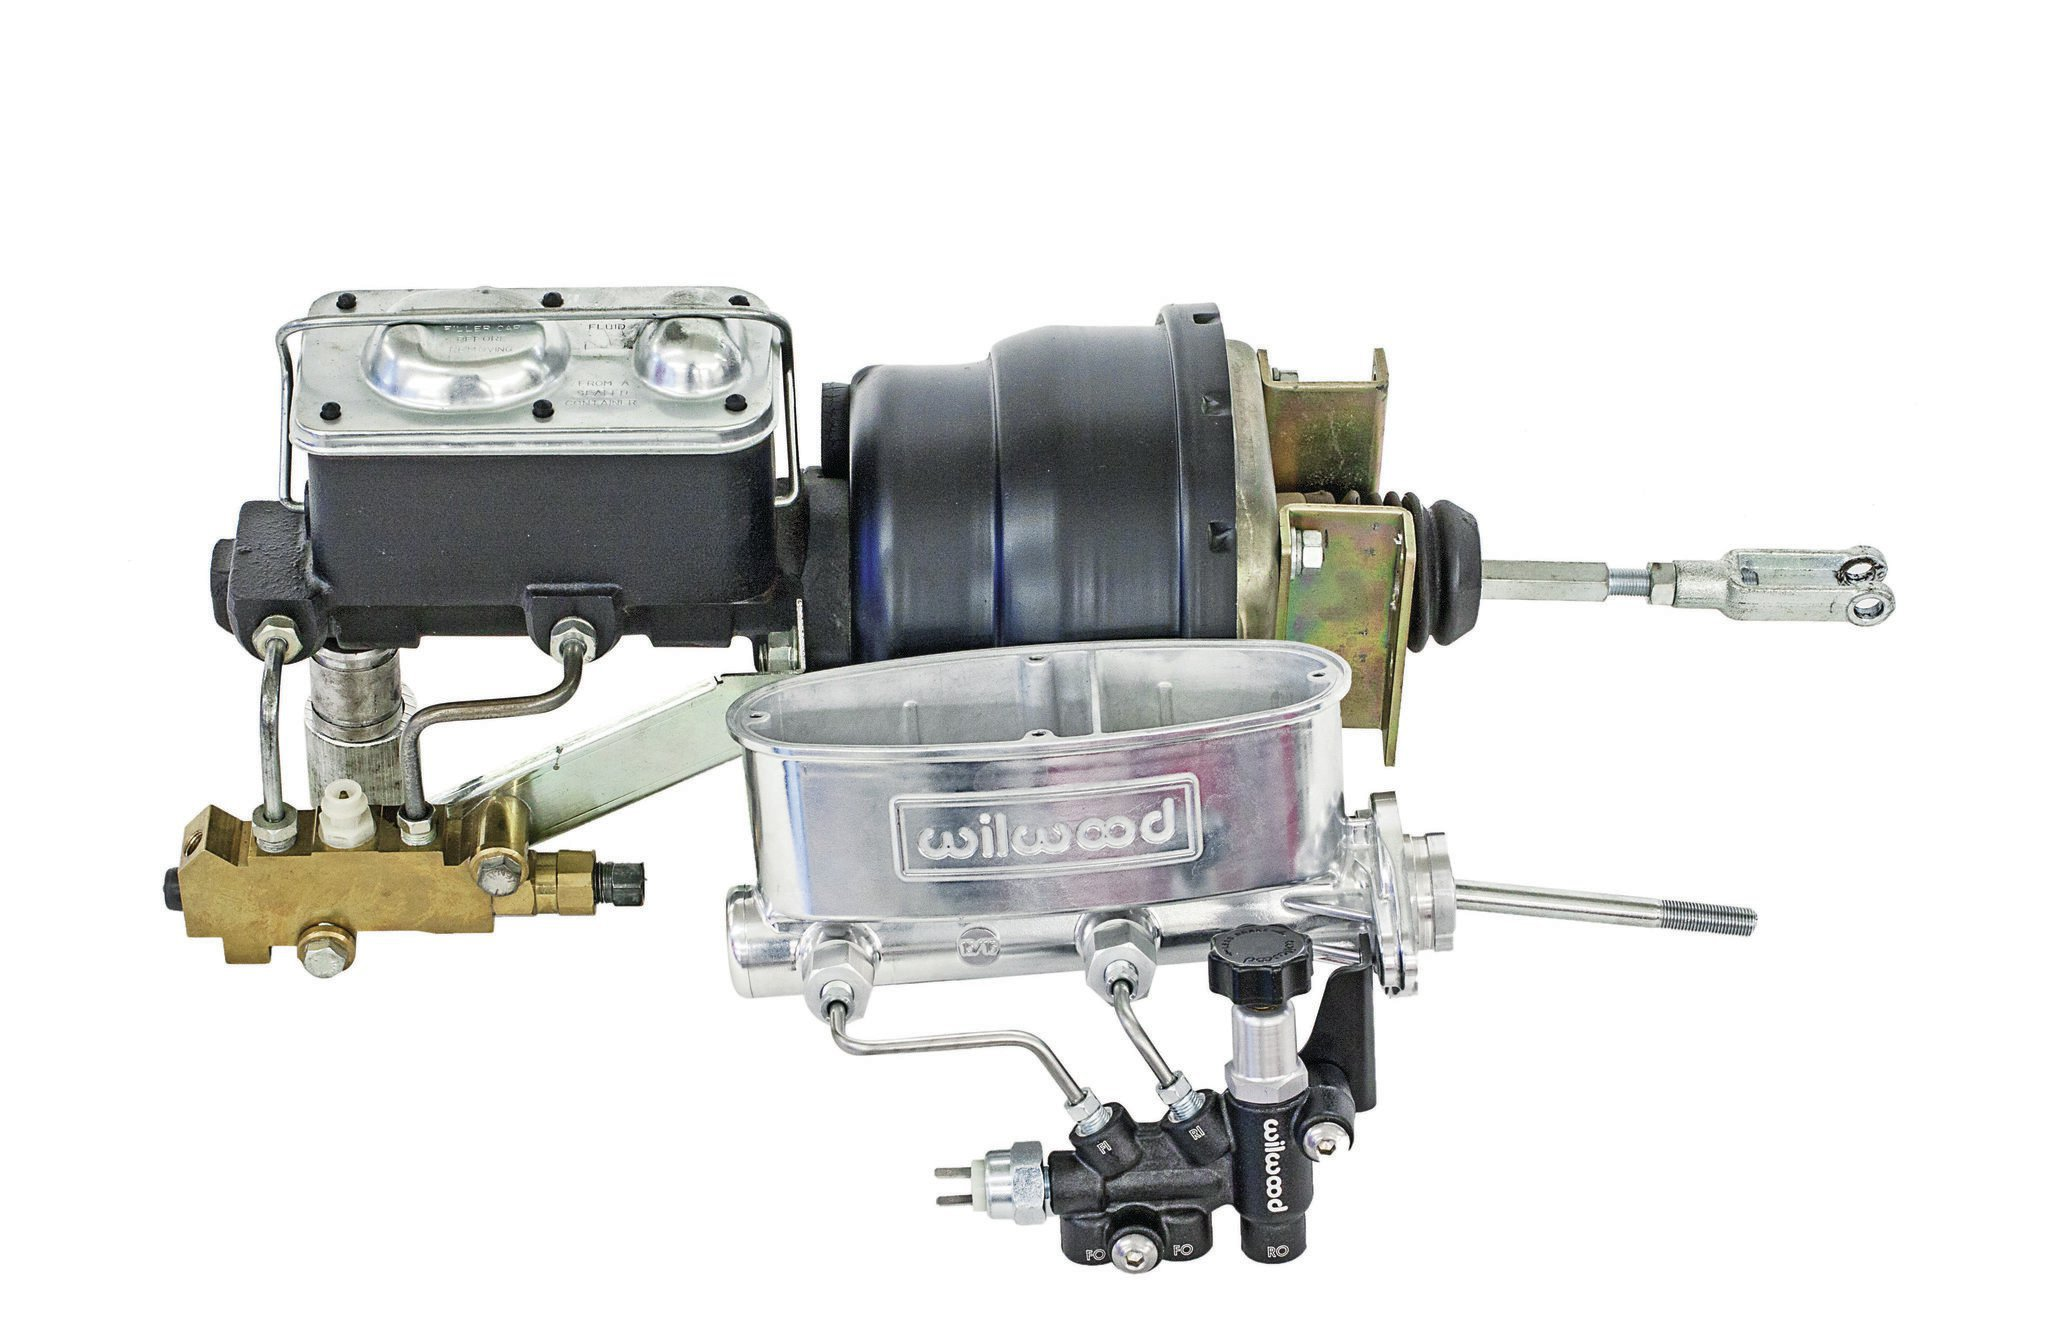 Due to low vacuum output from the tiny 7-inch-od vacuum booster, Wilwood decided to go full manual, replacing the old 15-pound booster, 11⁄8-inch bore master cylinder, and nonadjustable proportioning valve combo with its compact 3-pound, dual-tandem, 15⁄16-inch-bore aluminum master cylinder and knob-style valve.